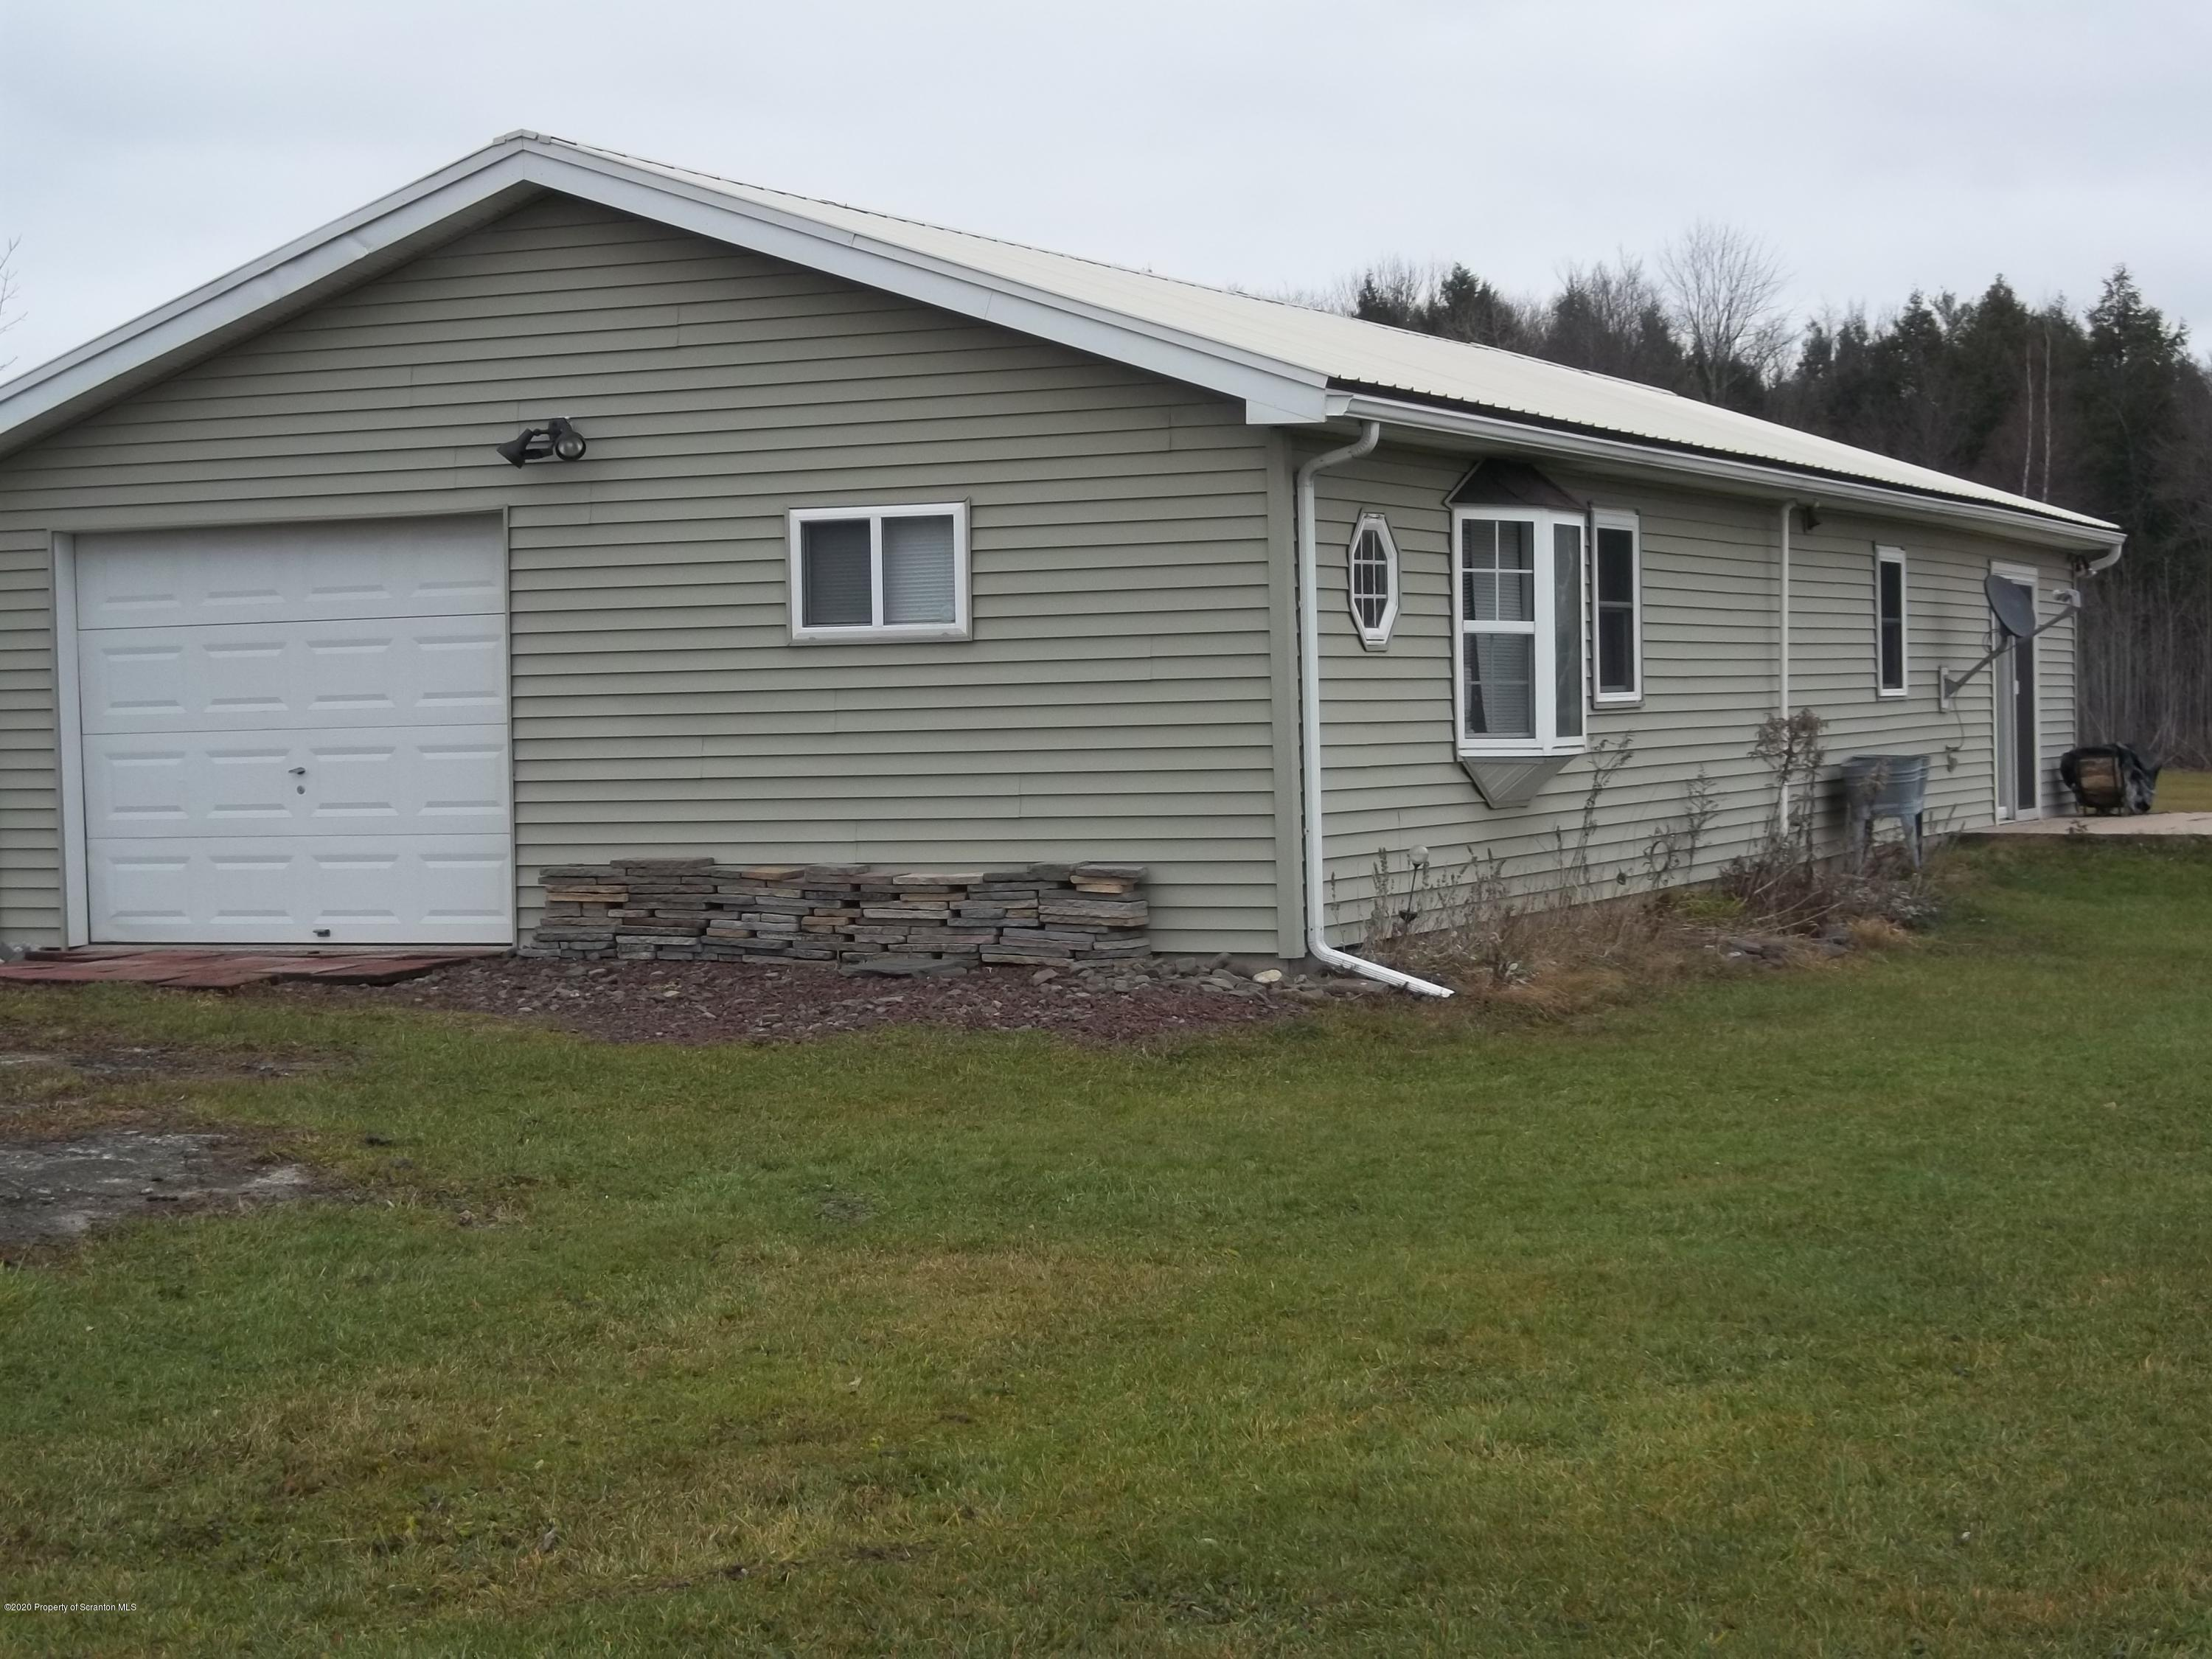 2354 Howell Road, New Milford, Pennsylvania 18834, 2 Bedrooms Bedrooms, 4 Rooms Rooms,1 BathroomBathrooms,Single Family,For Sale,Howell Road,20-5071